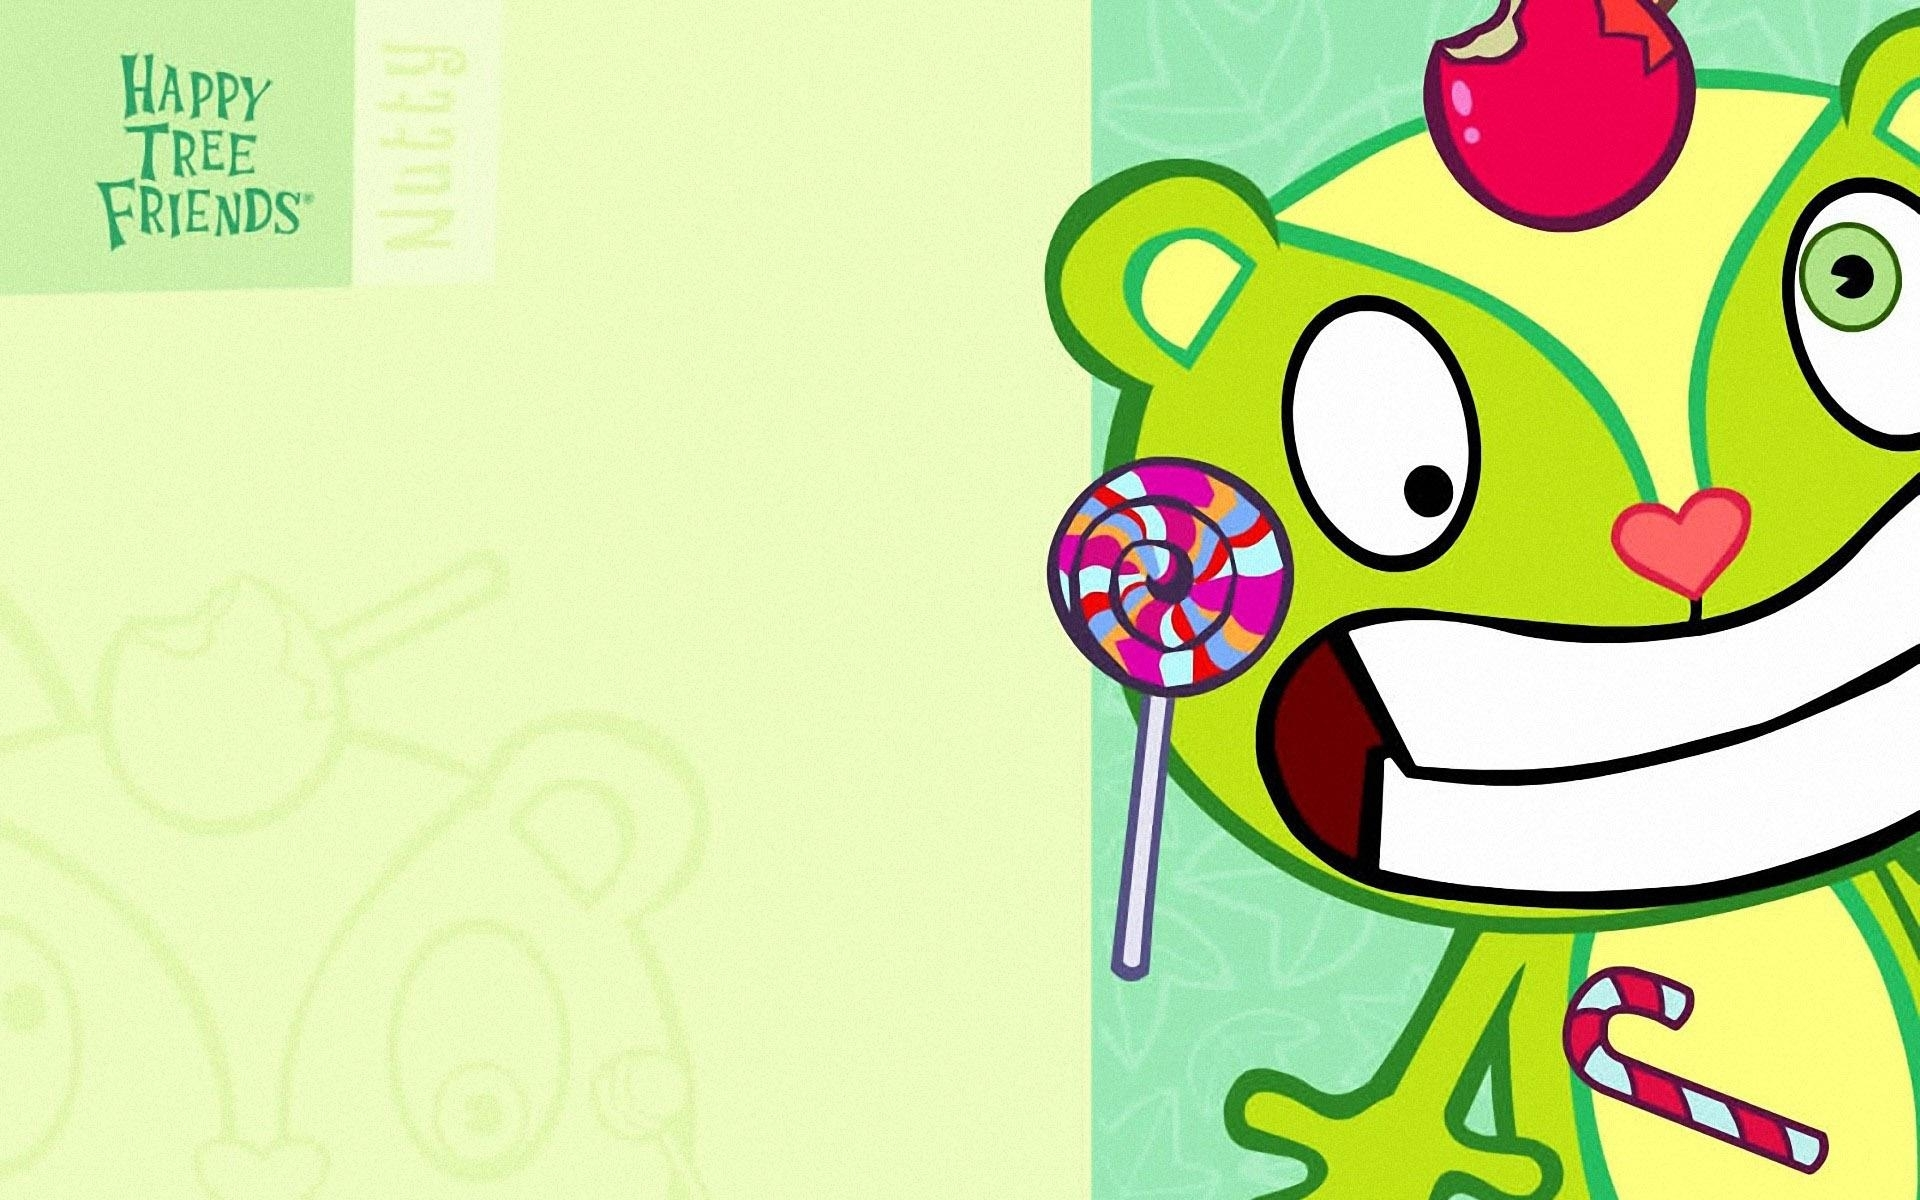 happy tree friends wallpapers - wallpaper cave